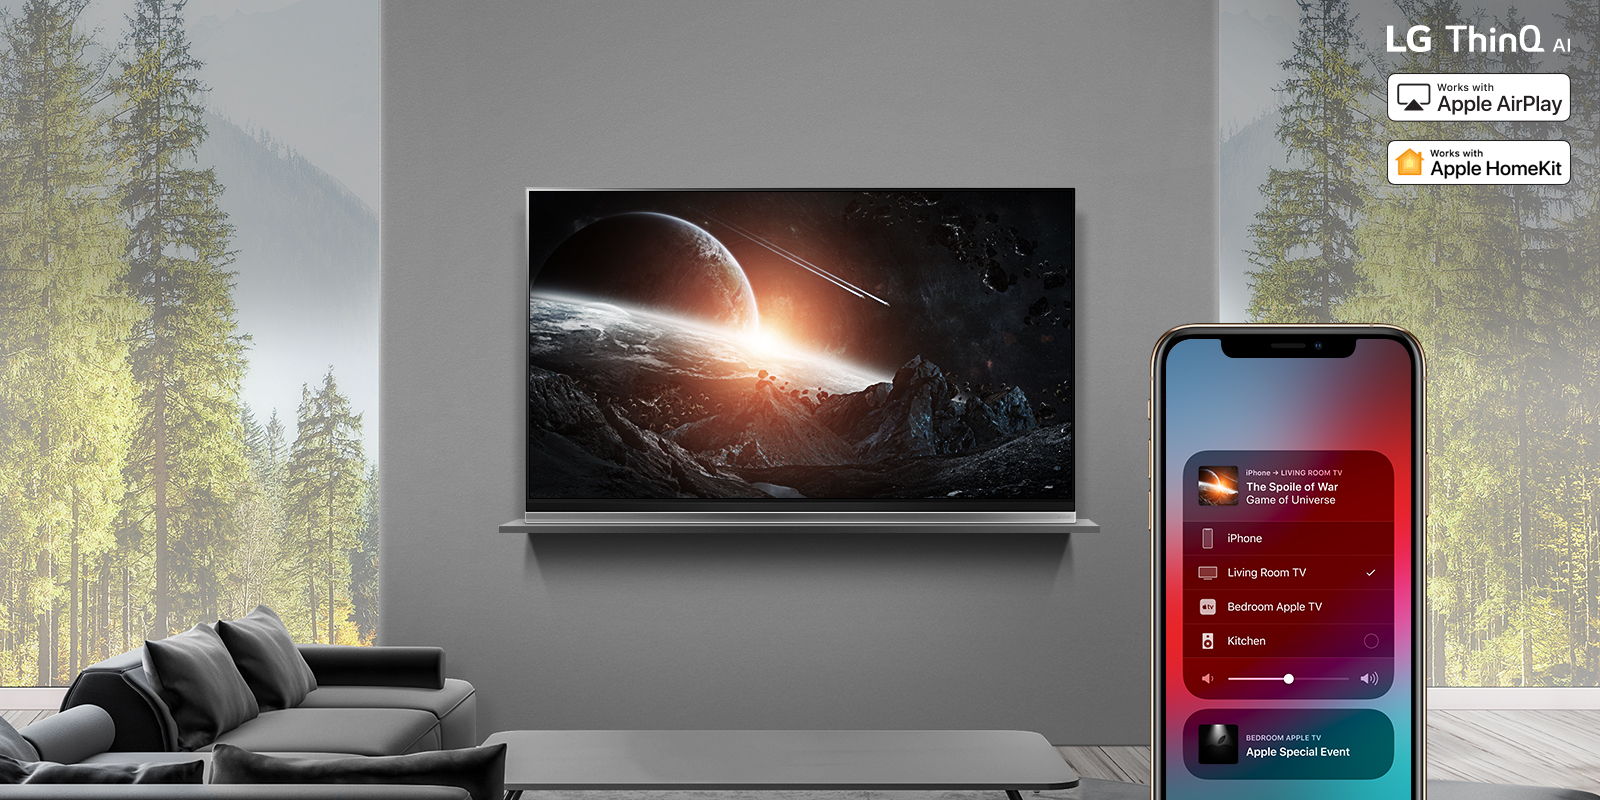 Apple AirPlay 2 and HomeKit rolling out to LG's 2019 TVs